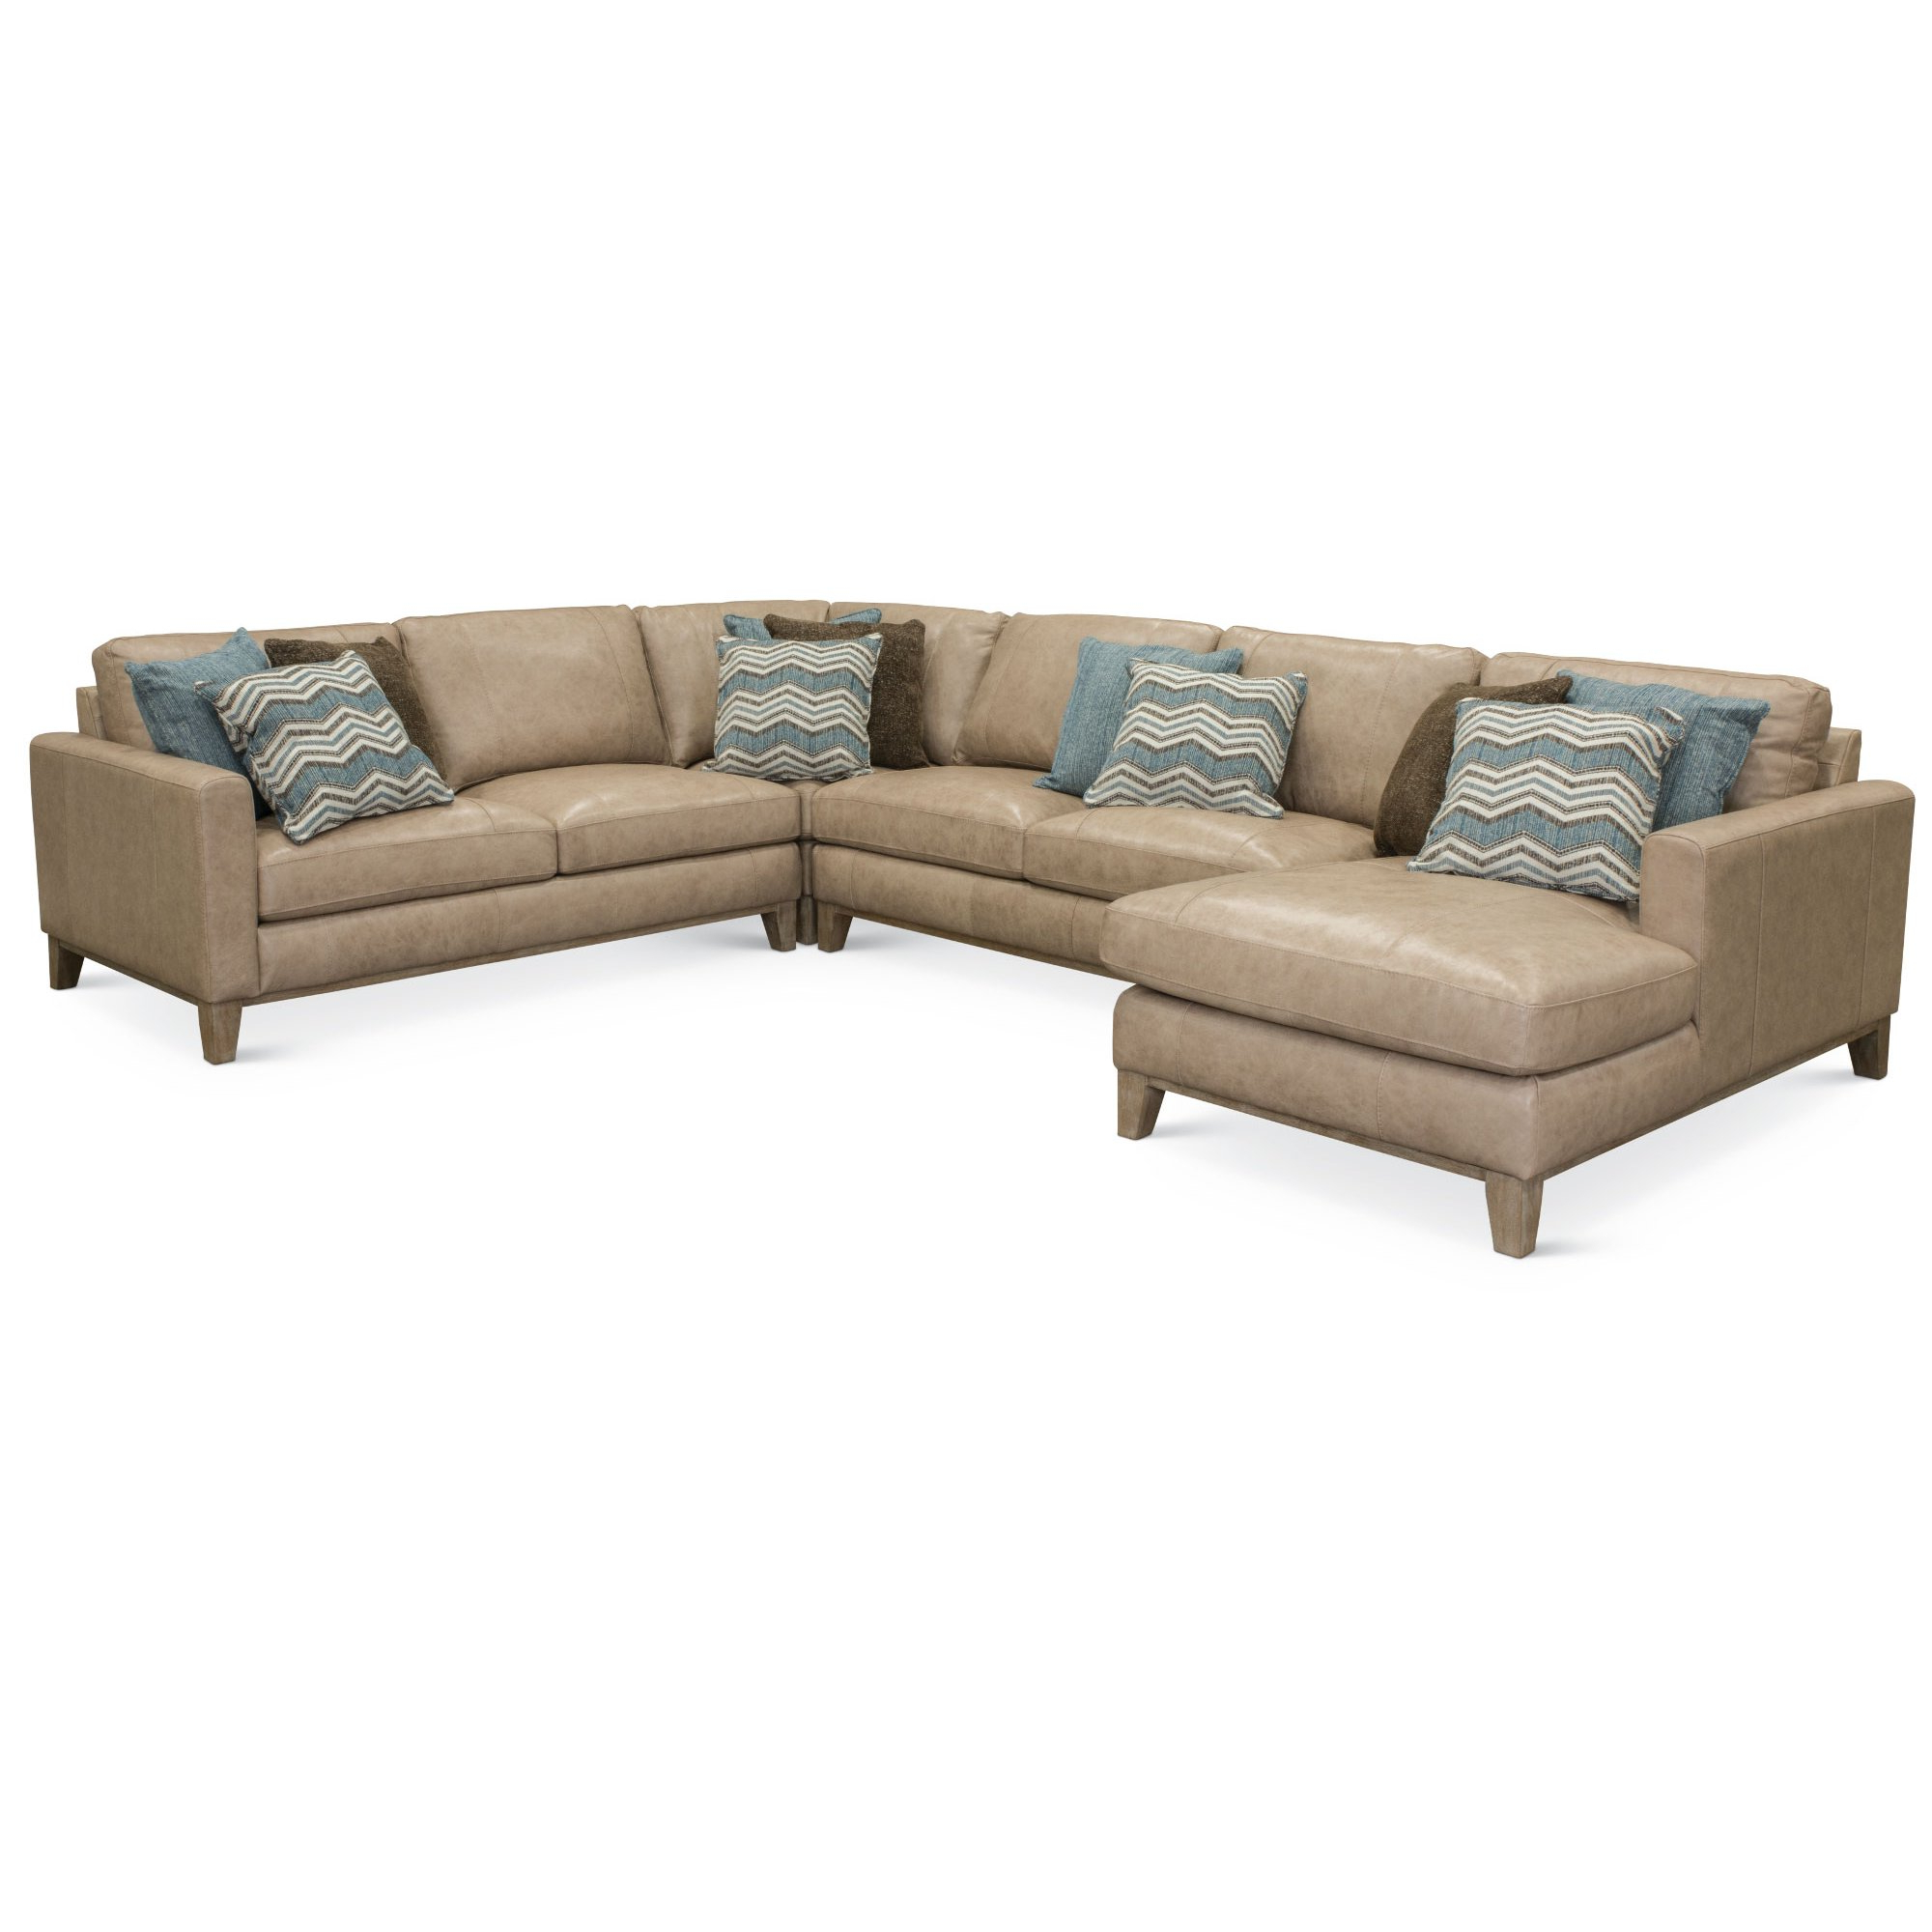 Recent Sand Leather 4 Piece Sectional Sofa With Laf Chaise – Mutual (View 15 of 20)